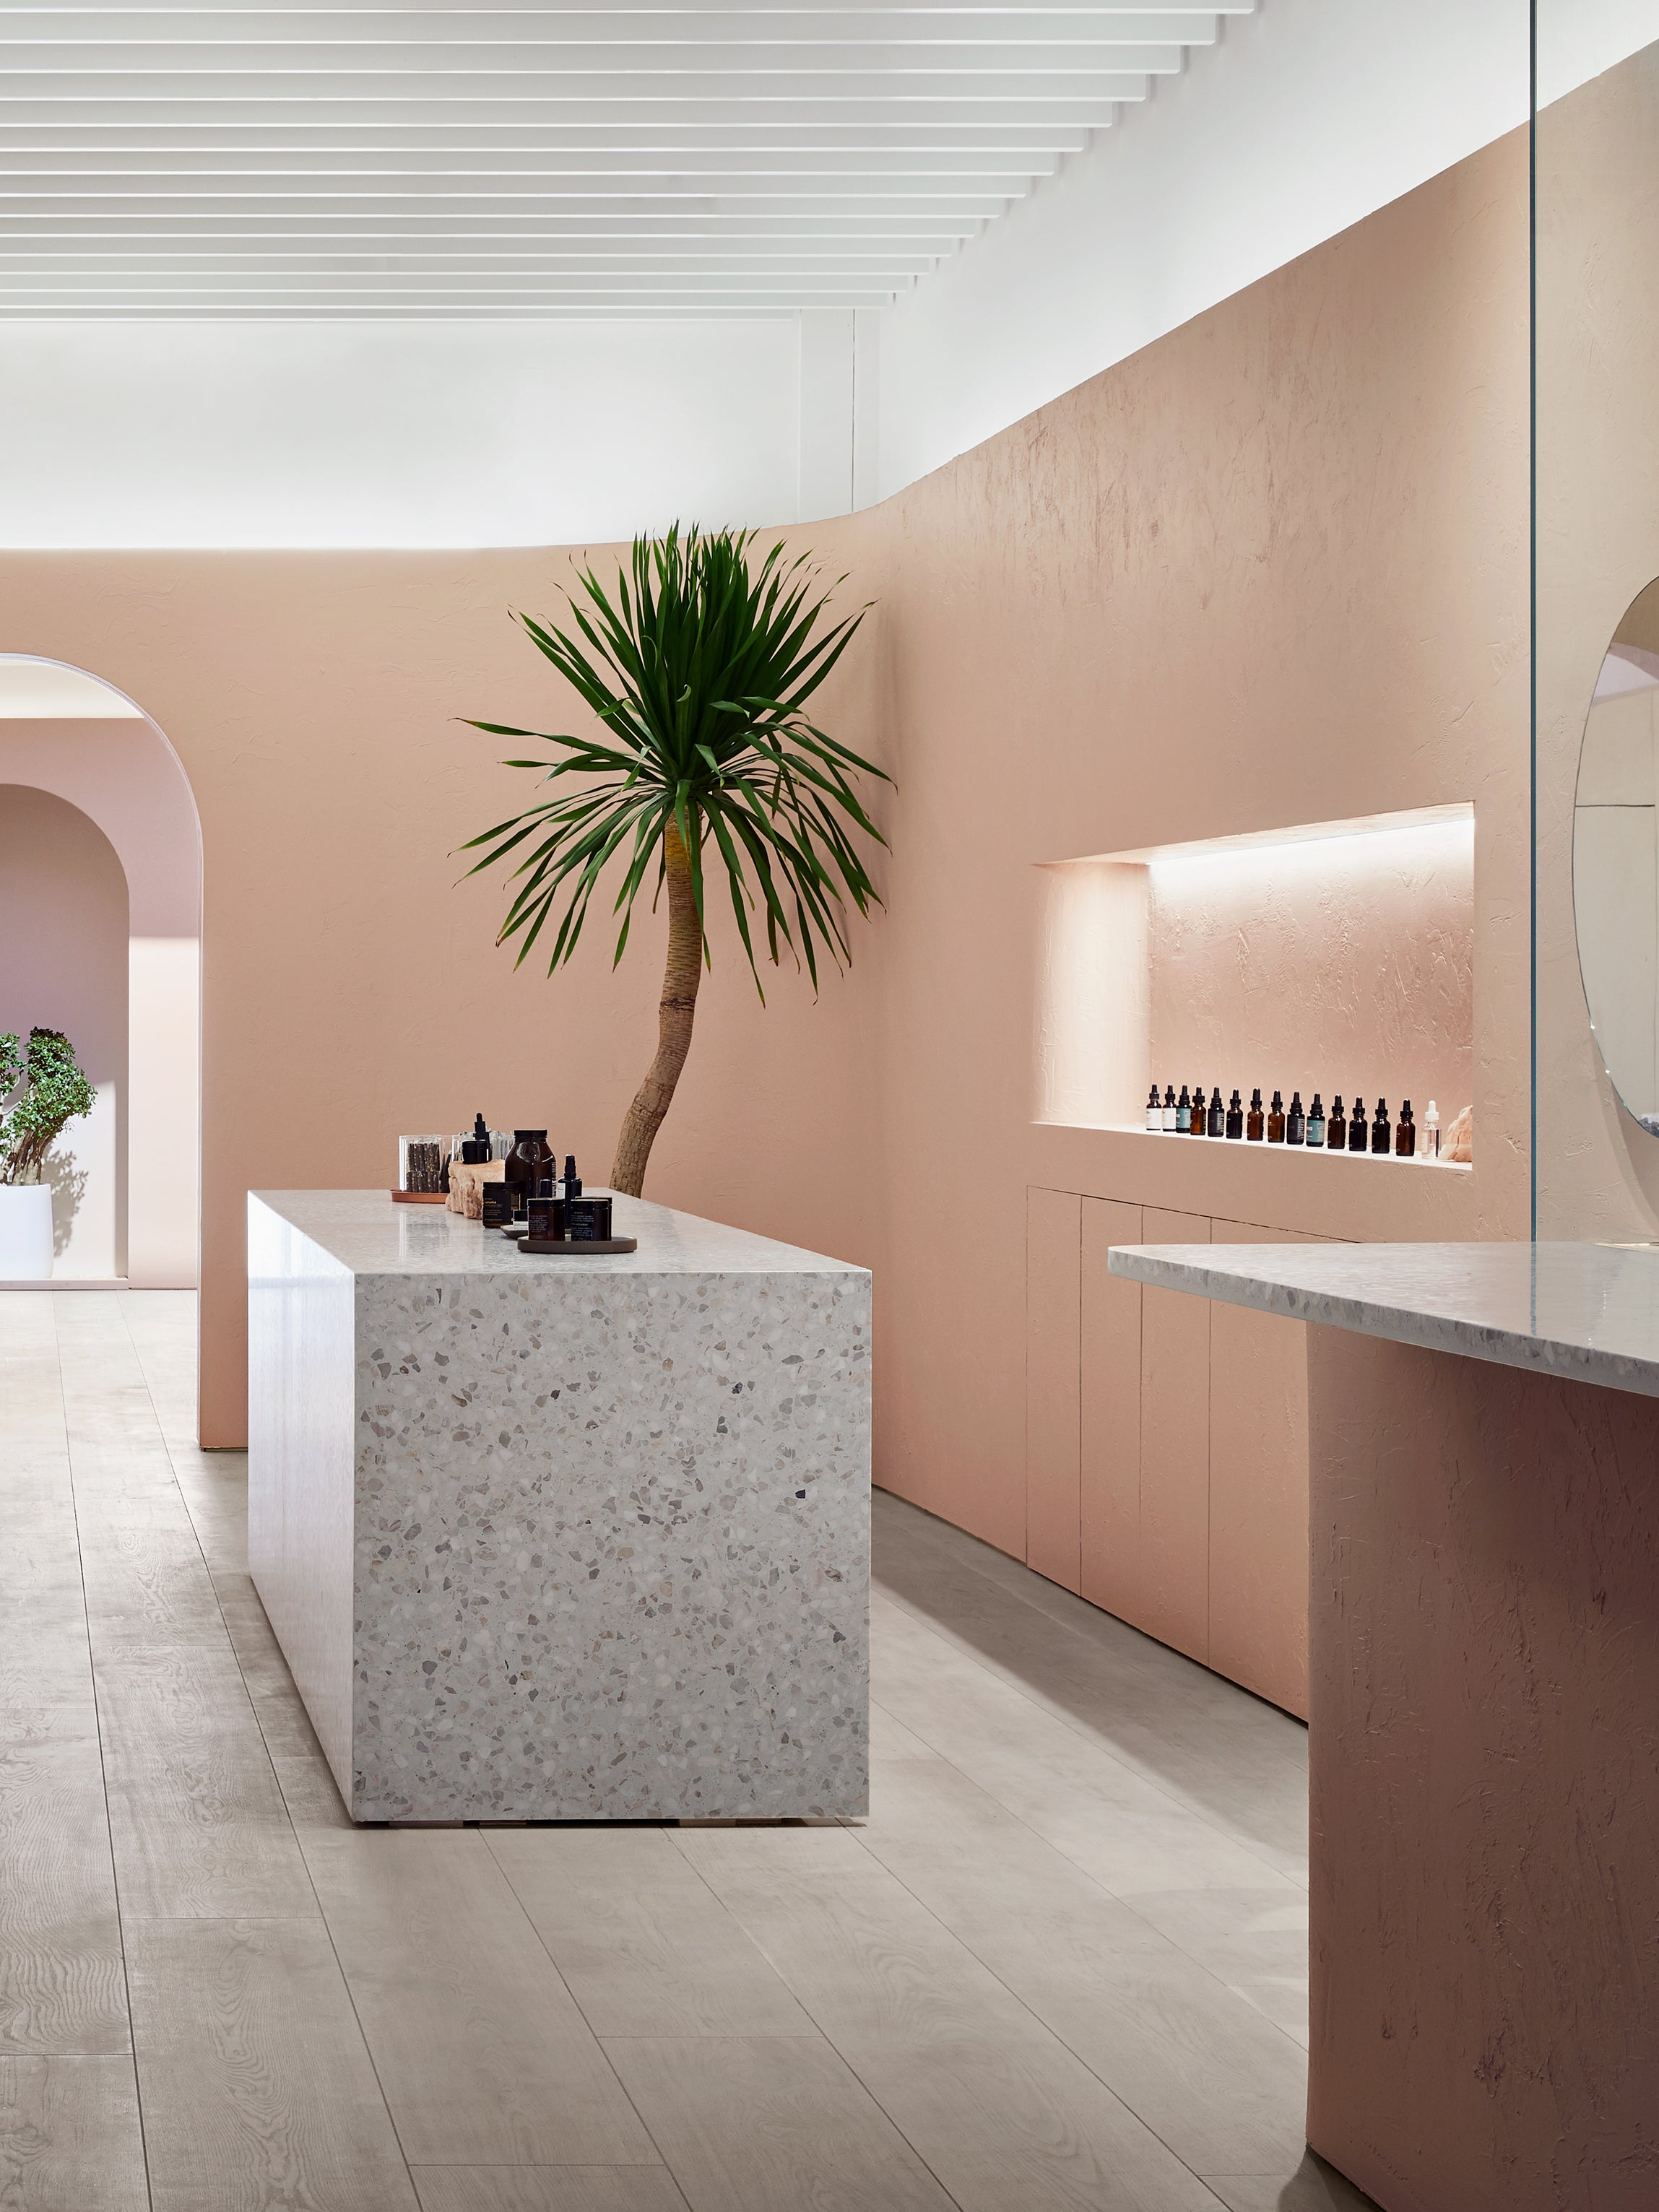 Standard Dose's Debut CBD Store Is a Visual Treat for the Senses